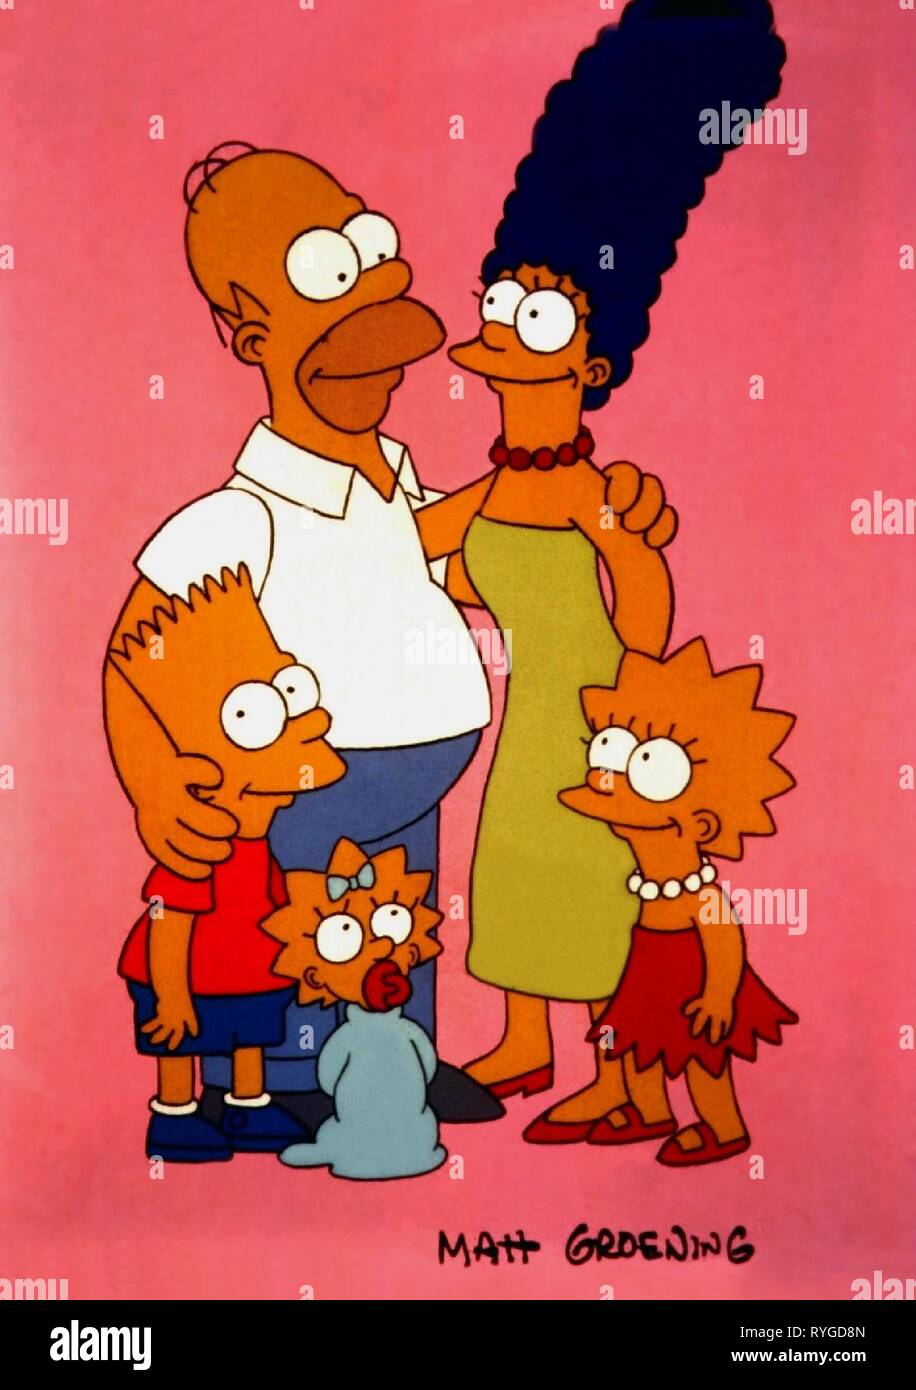 THE SIMPSONS, THE SIMPSONS, 1989 - Stock Image